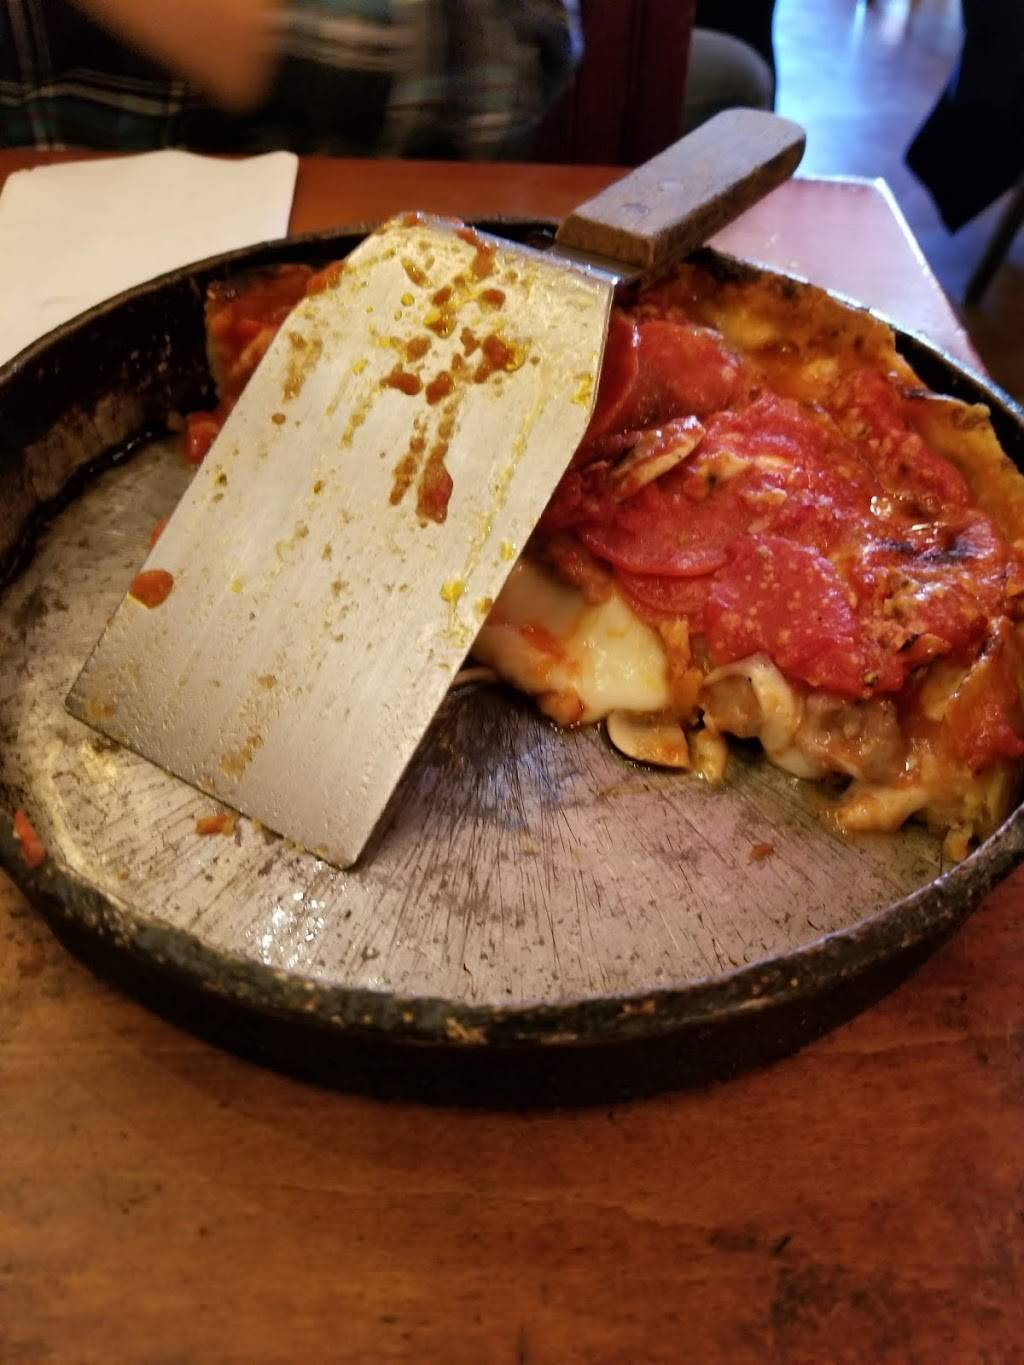 Lou Malnatis Pizzeria   meal delivery   805 S State St, Chicago, IL 60605, USA   3127861000 OR +1 312-786-1000